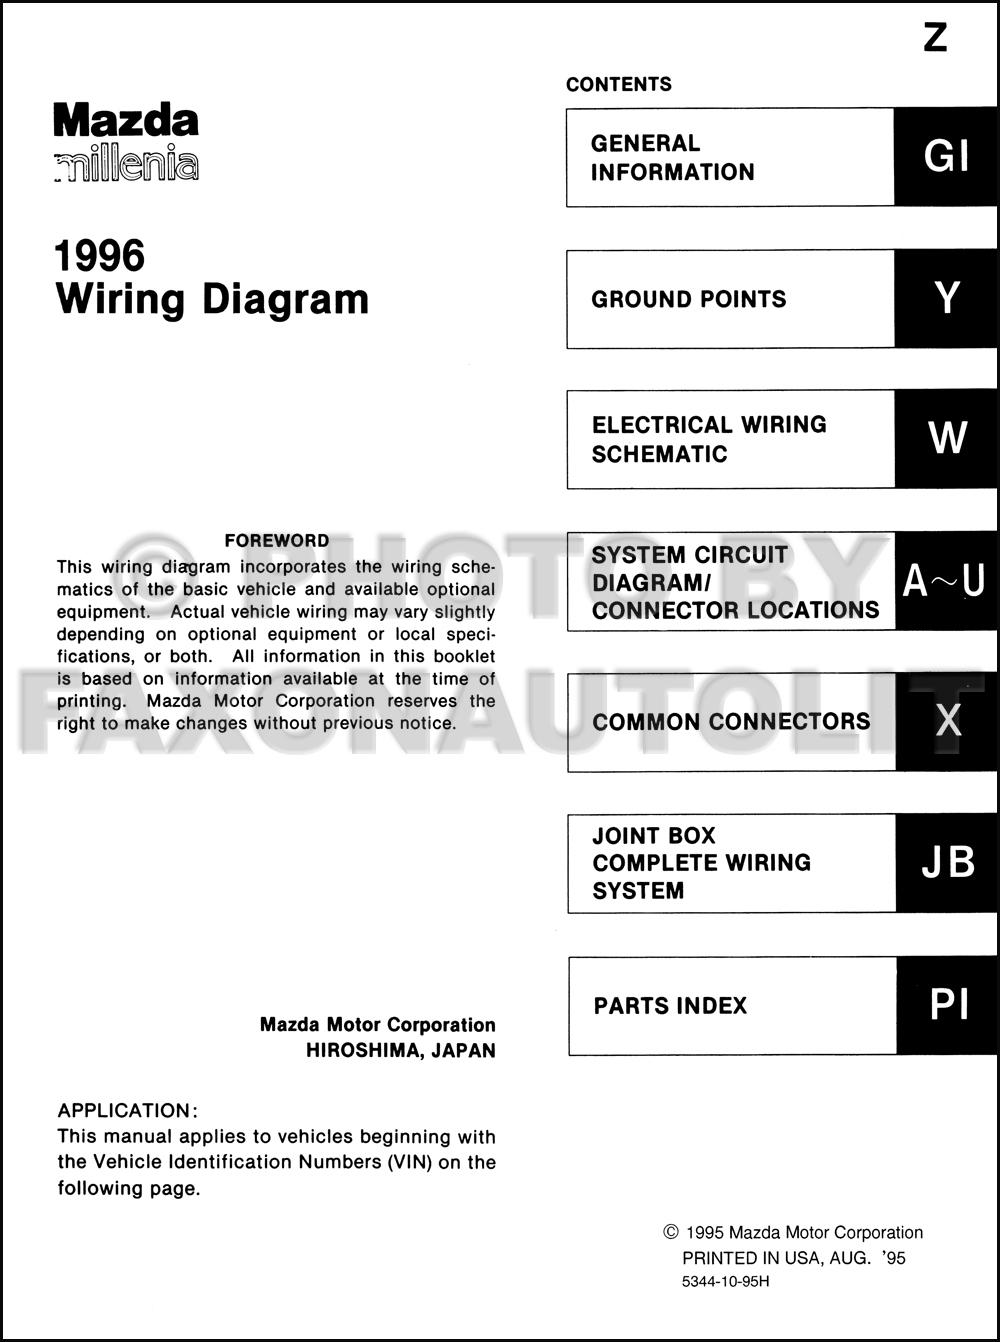 hight resolution of 1996 mazda millenia wiring diagram manual original 2000 mazda millenia engine diagram mazda millenia parts